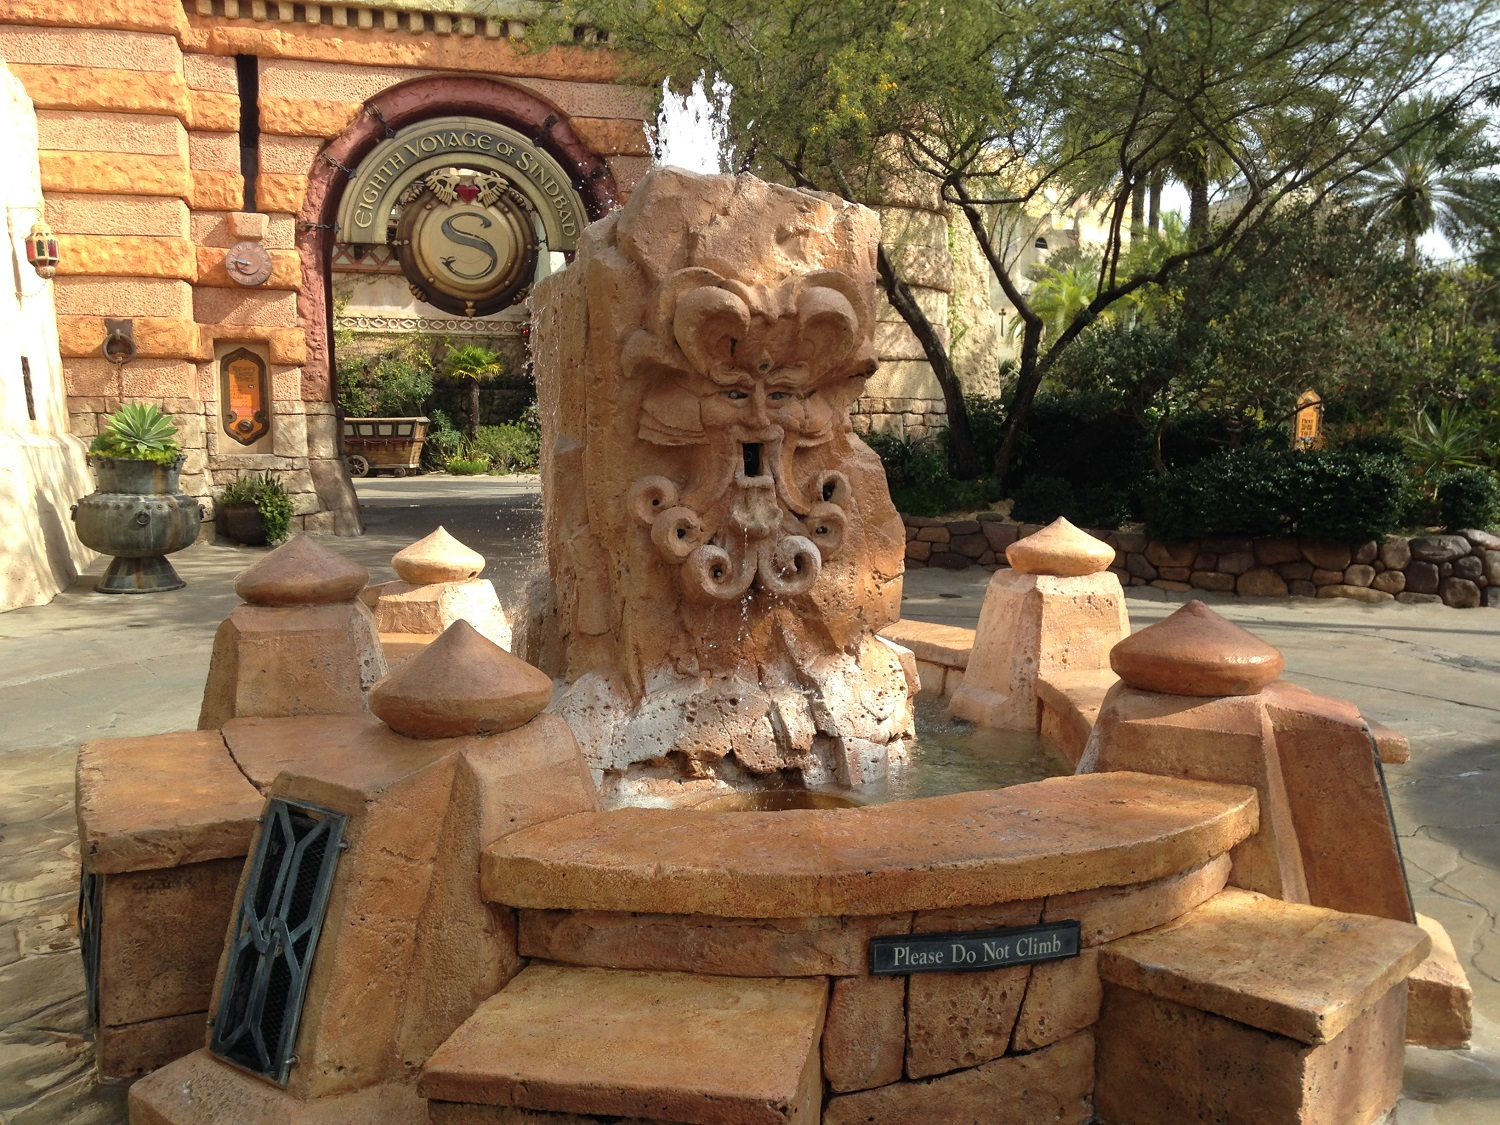 The Mystic Fountain is located near the entrance of The Eighth Voyage of Sinbad in The Lost Continent.